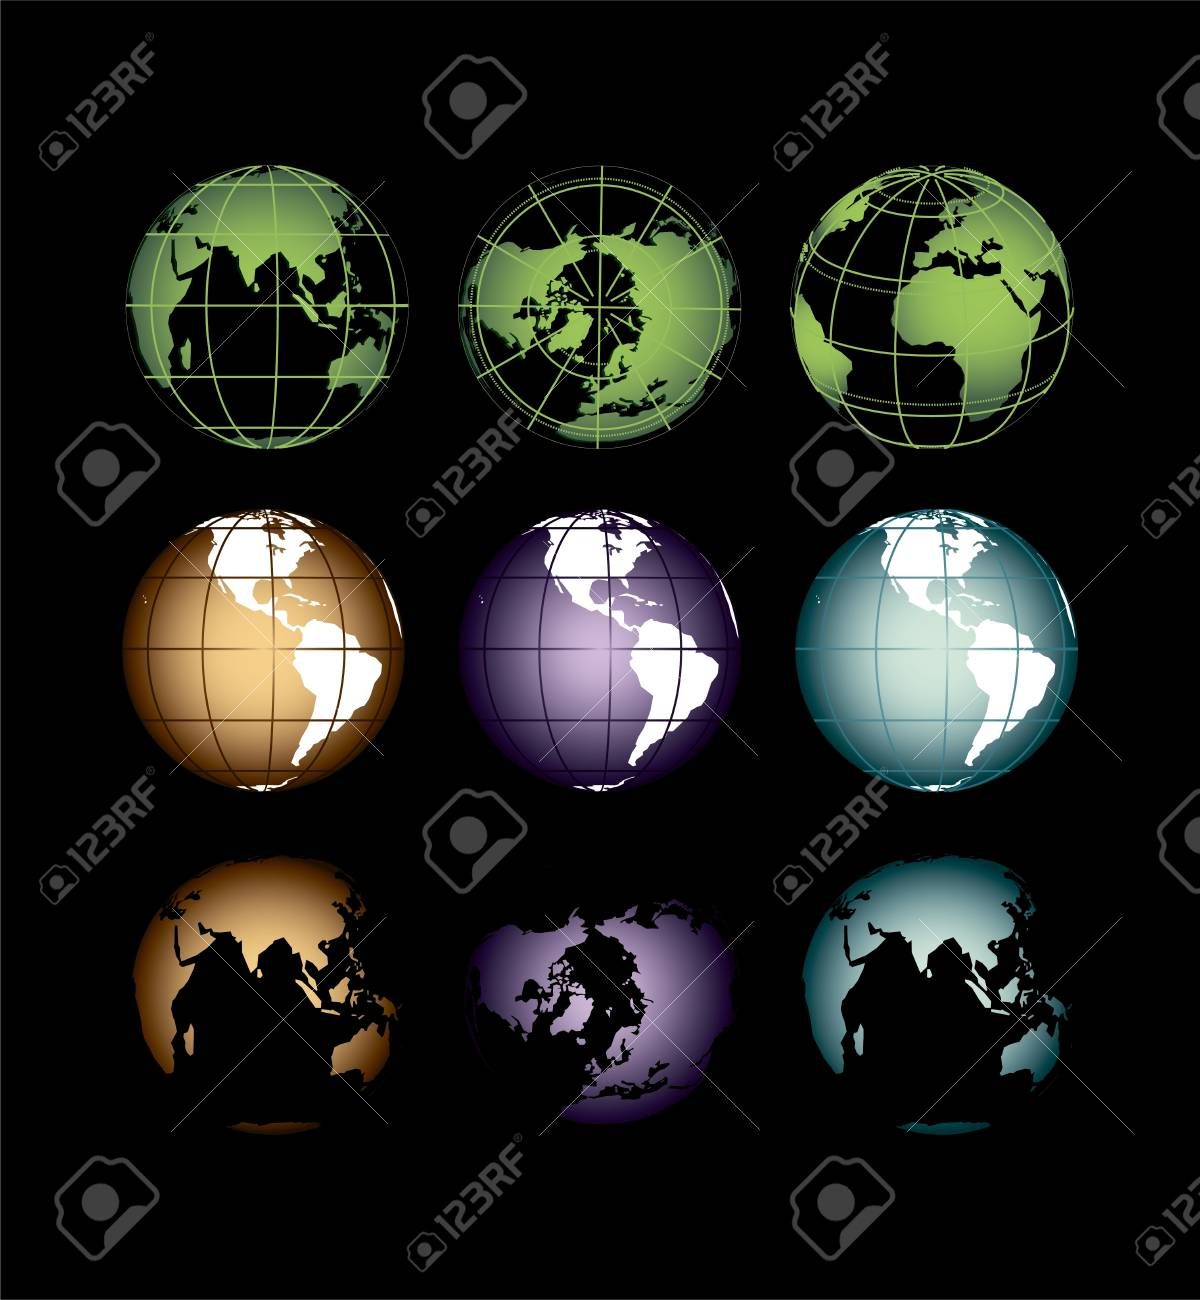 the globe of the earth in different positions on a dark background Stock Vector - 18764052